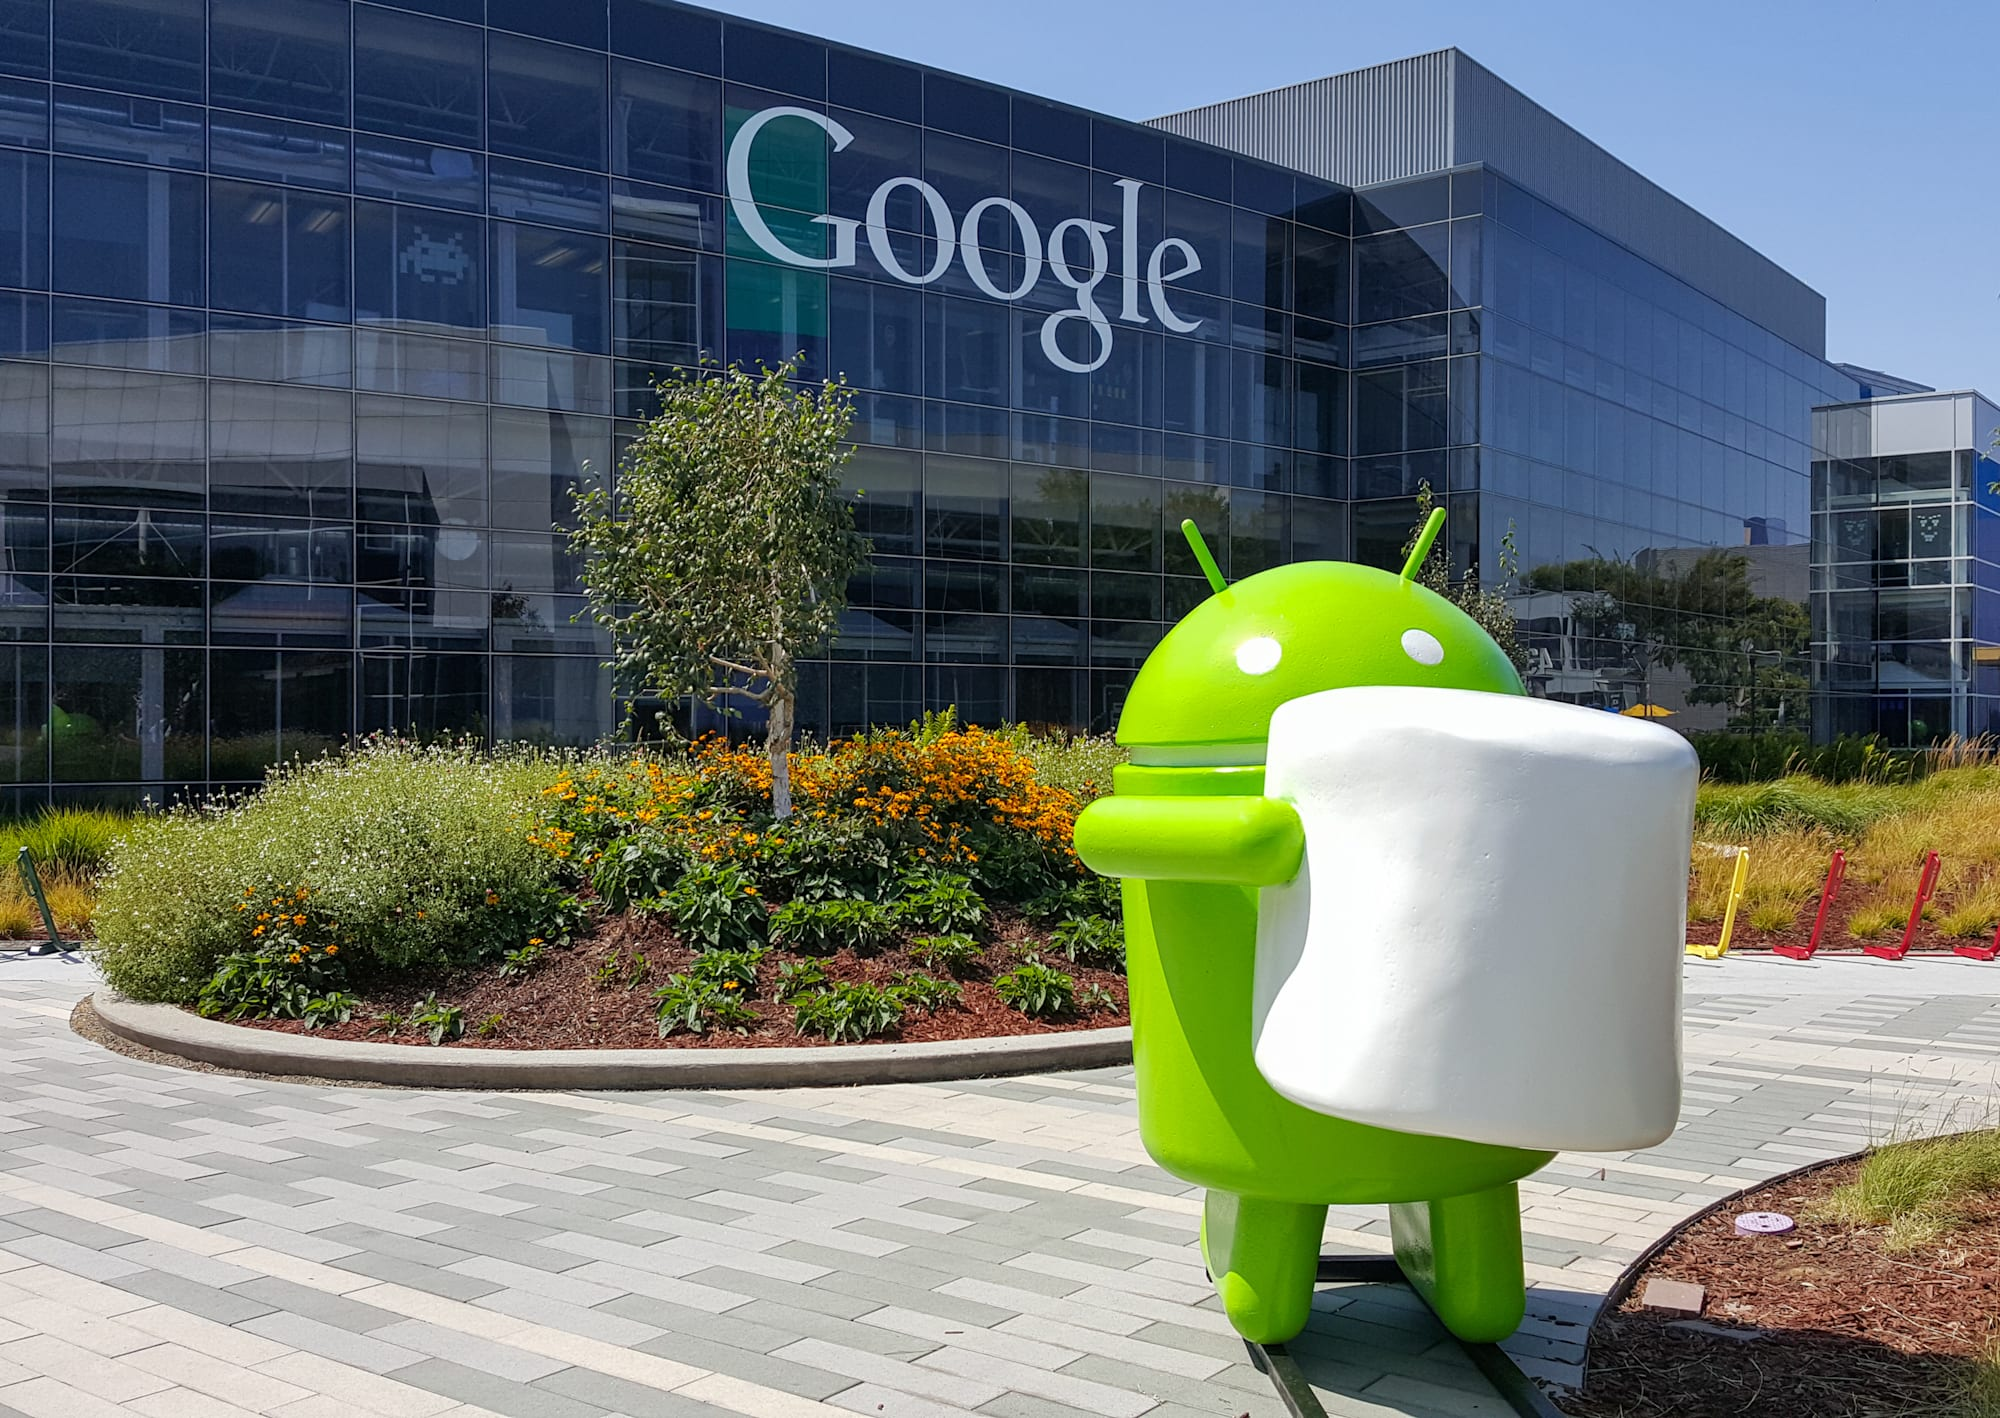 Exterior view of Google office with Android Marshmallow